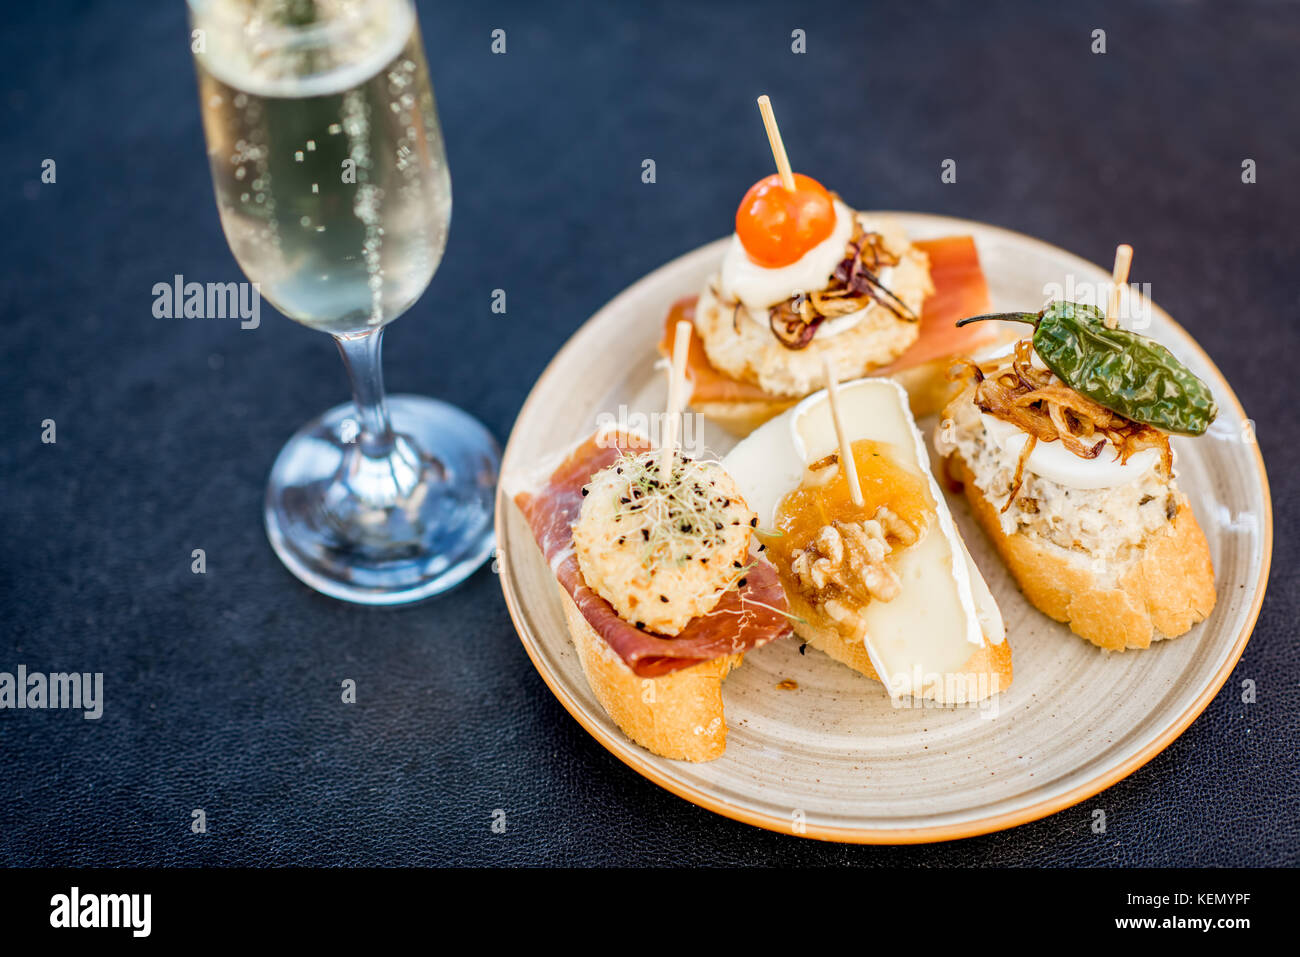 Set of pinchos on the table - Stock Image